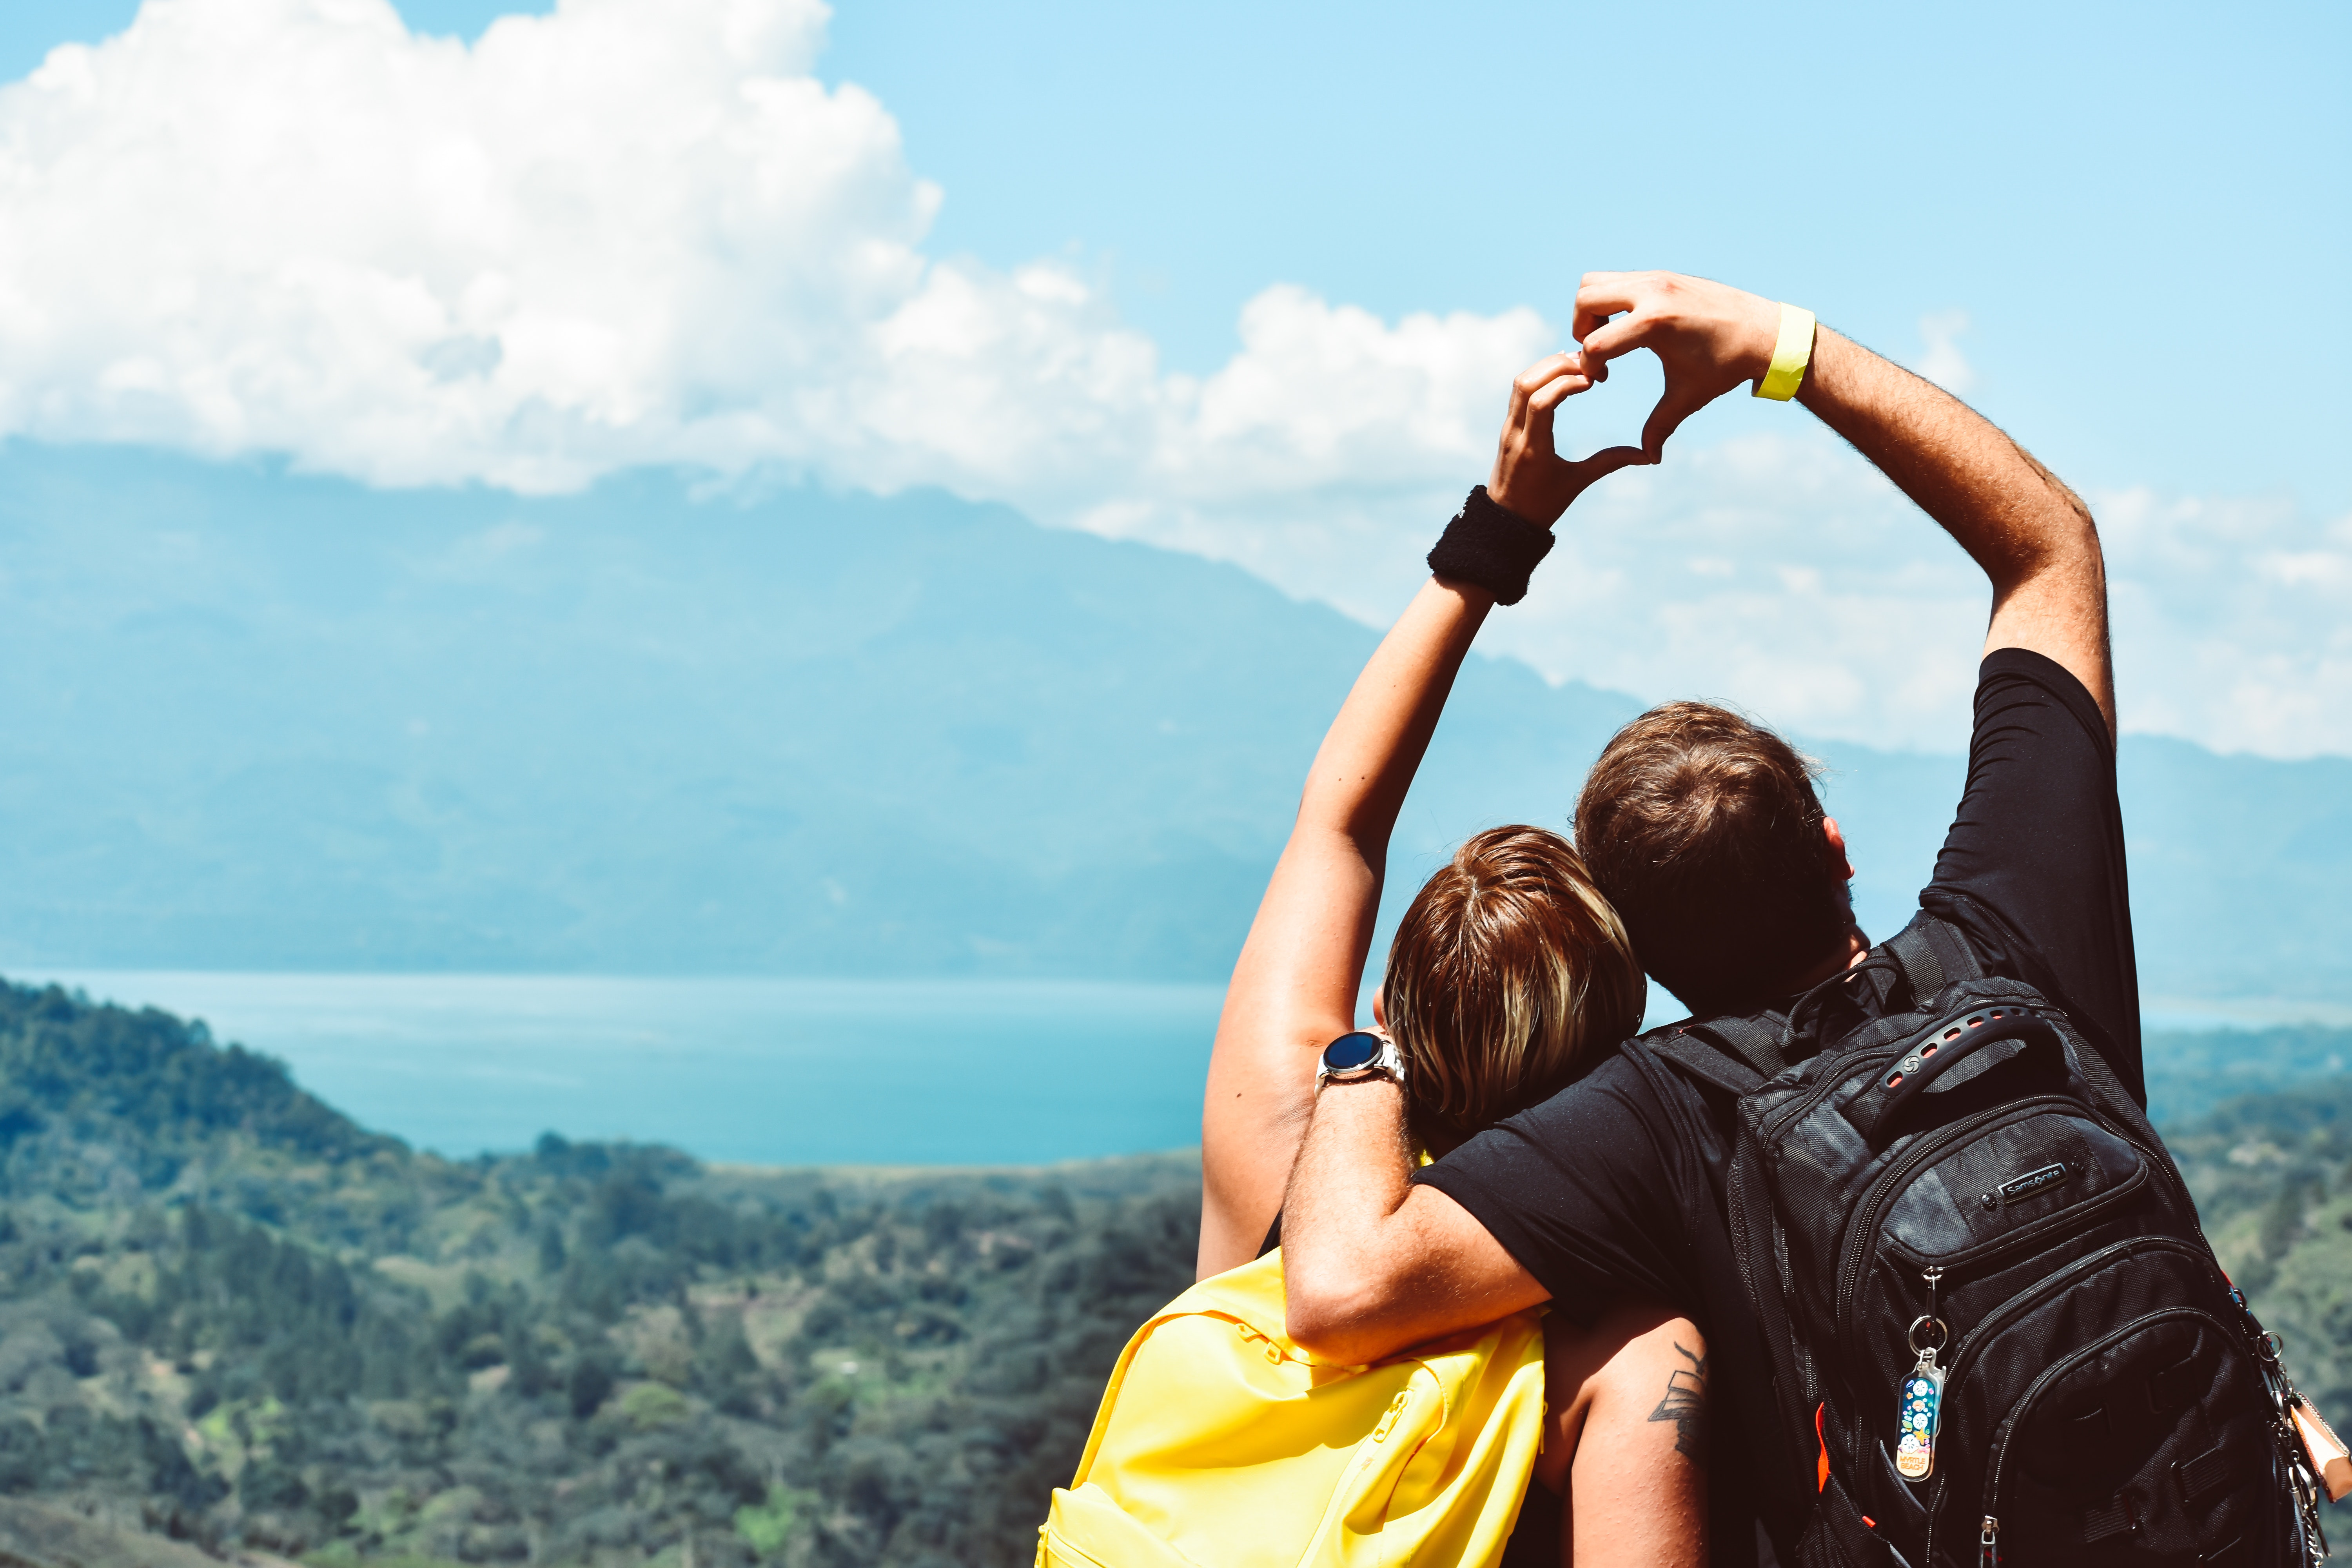 Lovers on a mountain with the view of a lake